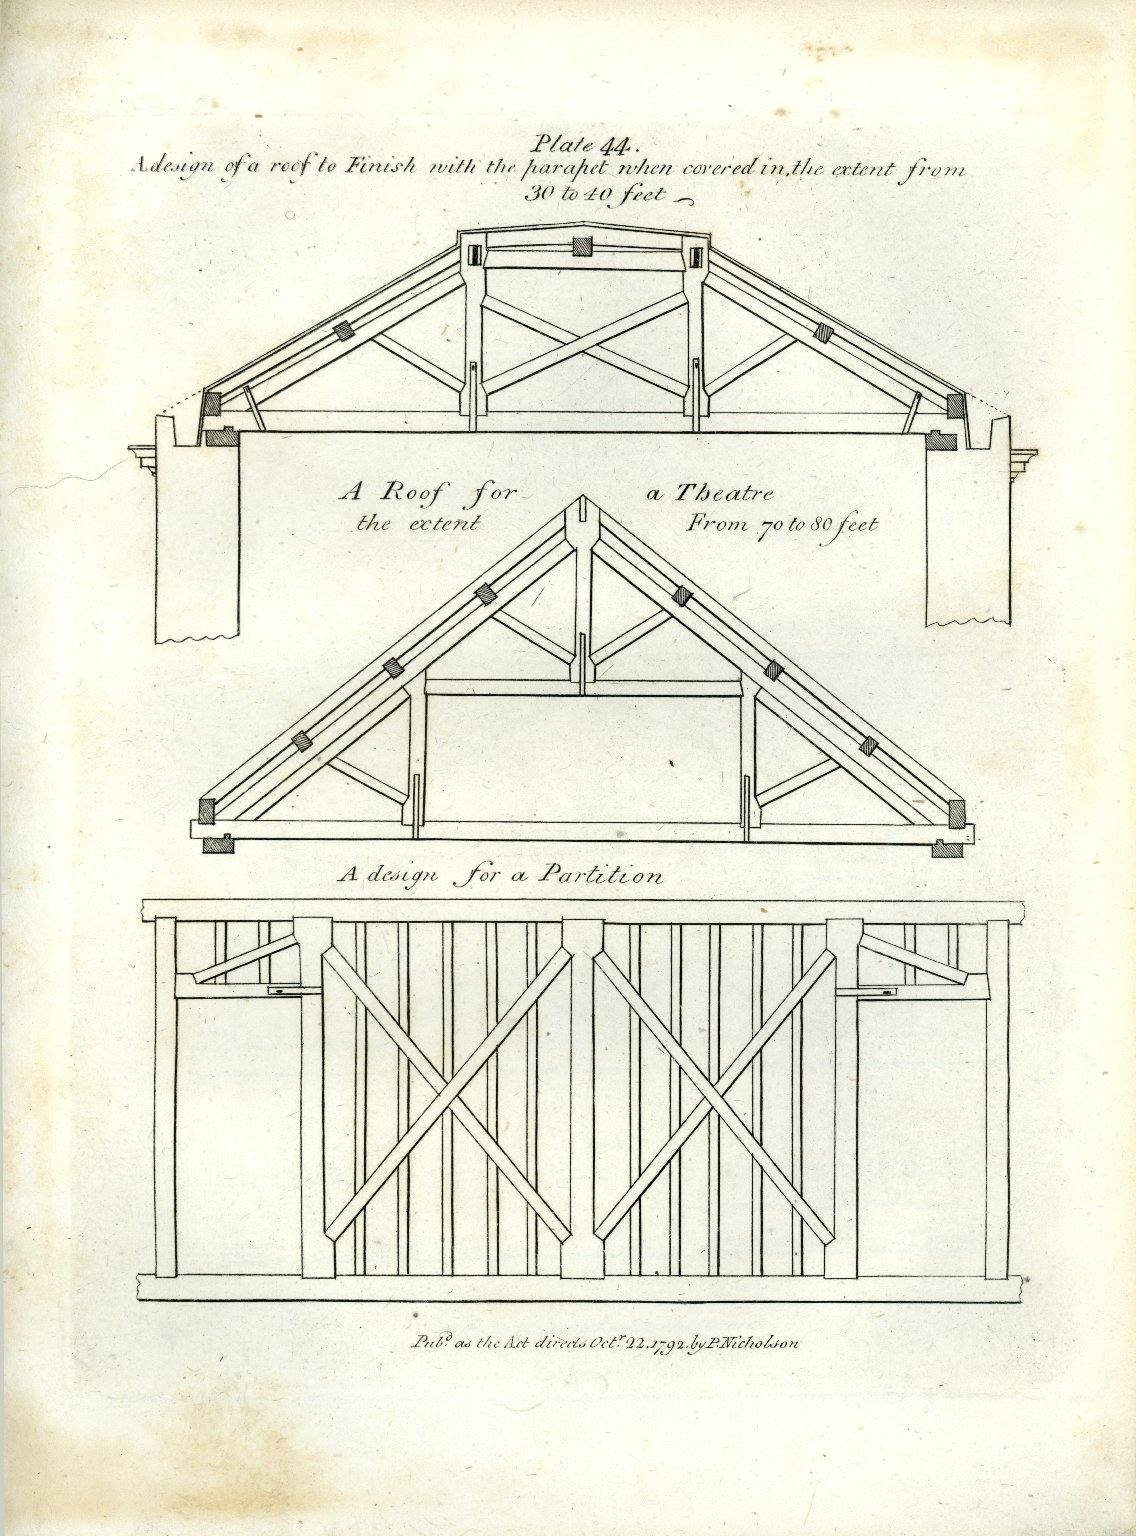 The Carpenter's New Guide: Being a Complete Book of Lines for Carpentry and Joinery, Plate 41